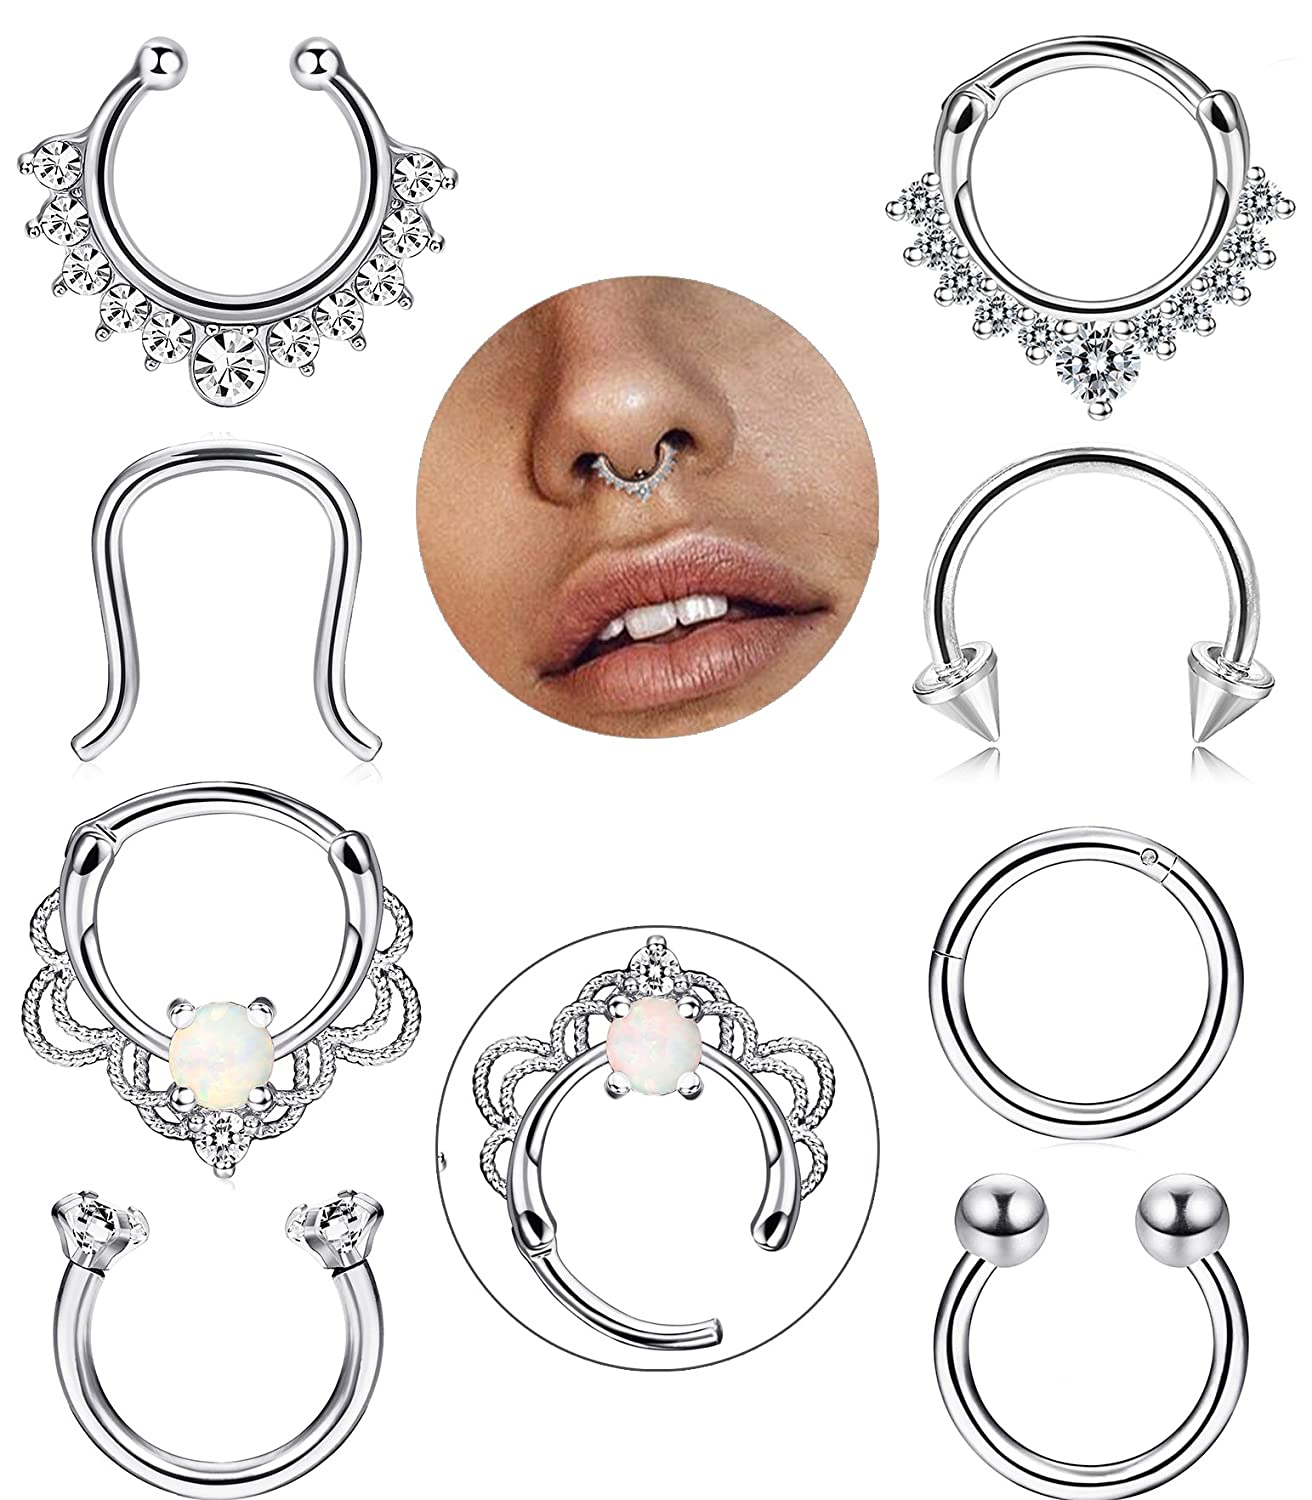 FIBO STEEL 8 Pcs 16g Stainless Steel Septum Ring Nose Hoop Clicker Septum Retainer Set Body Piercing Jewelry P059SET-S